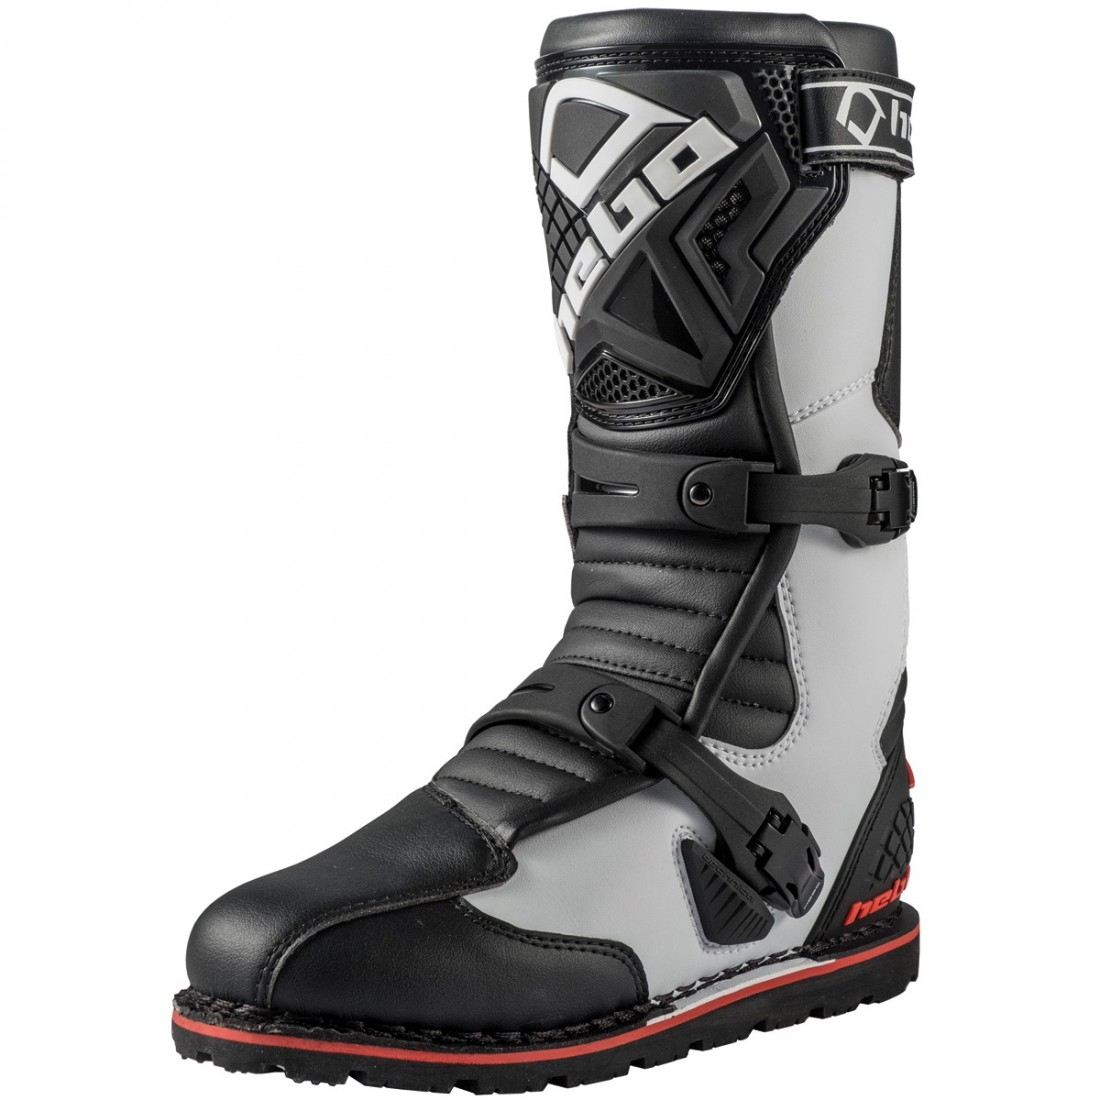 HEBO Technical 2.0 Micro White Black Boots